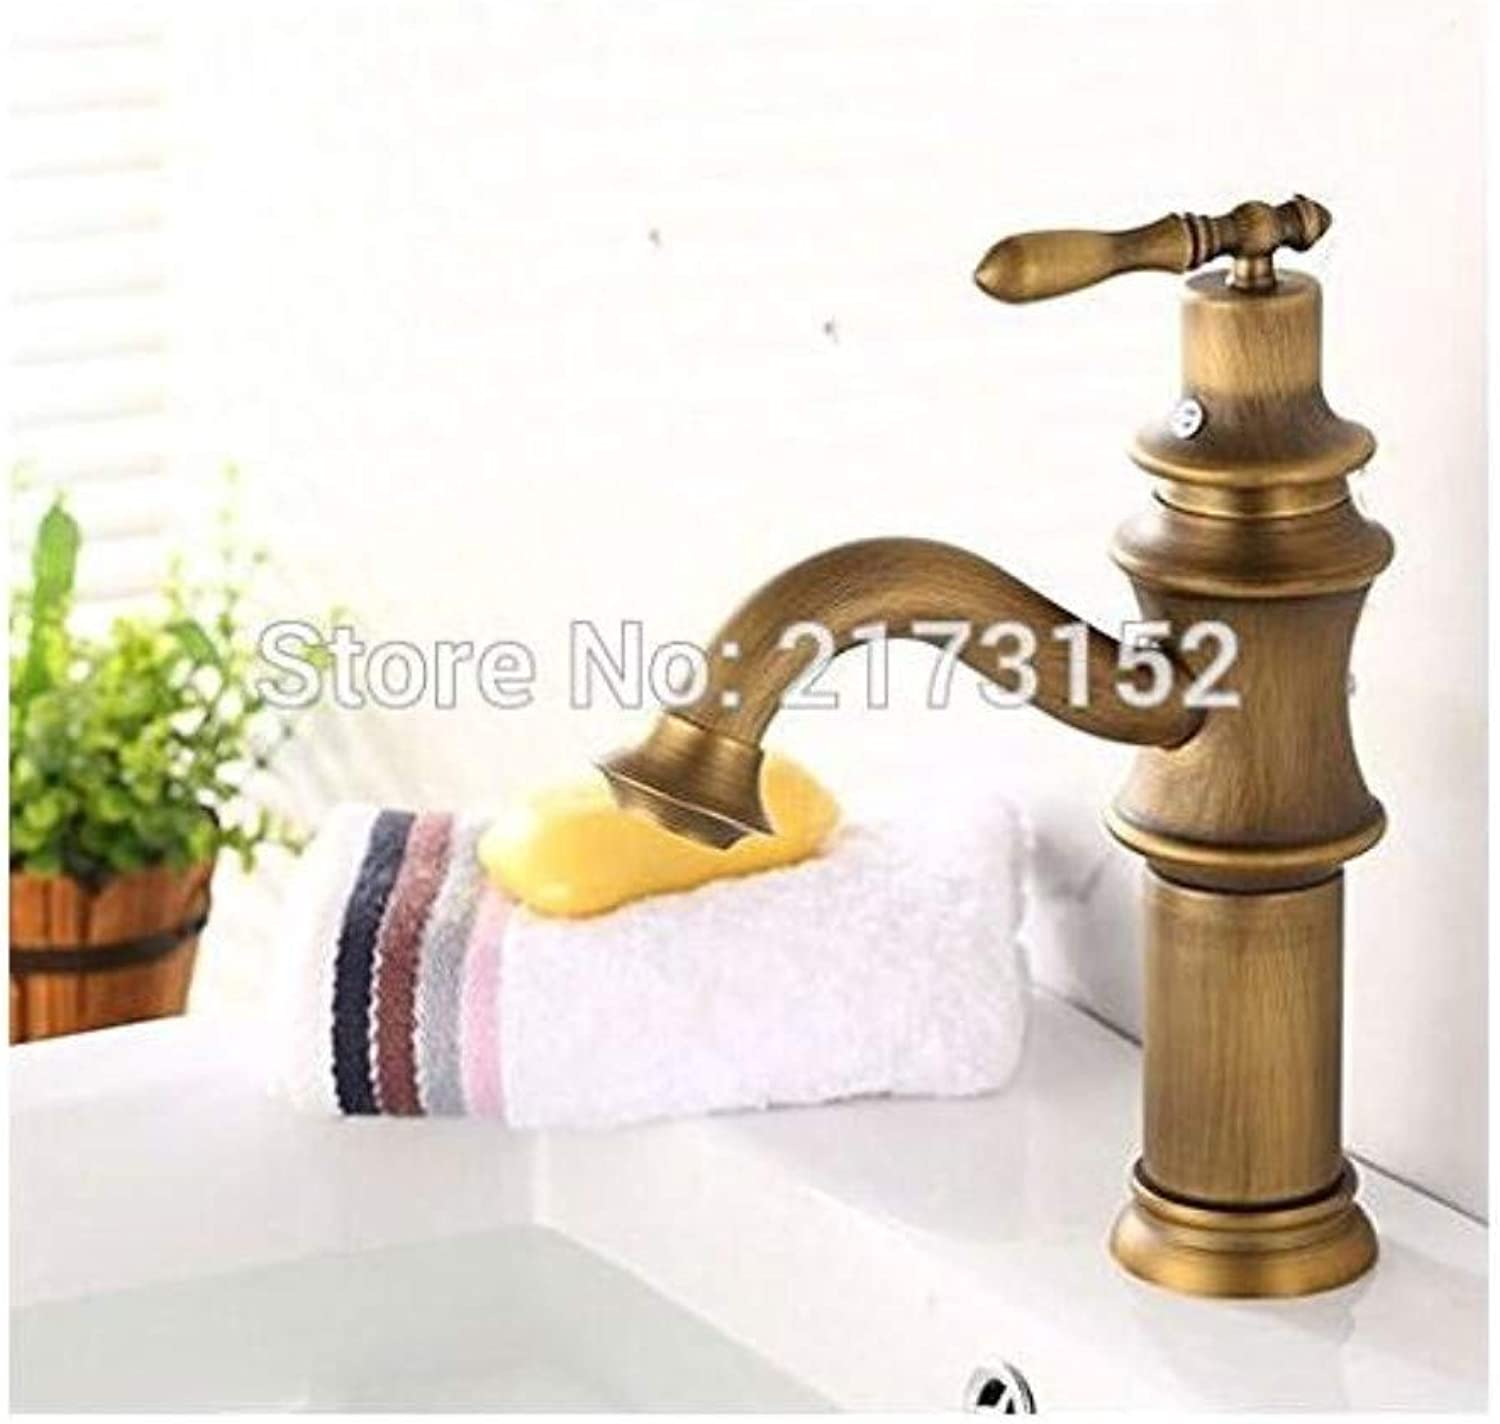 WEIUTY Nordic bathroom toilet hot and cold basin faucet black single hole under counter basin faucet Restroom Fixtures